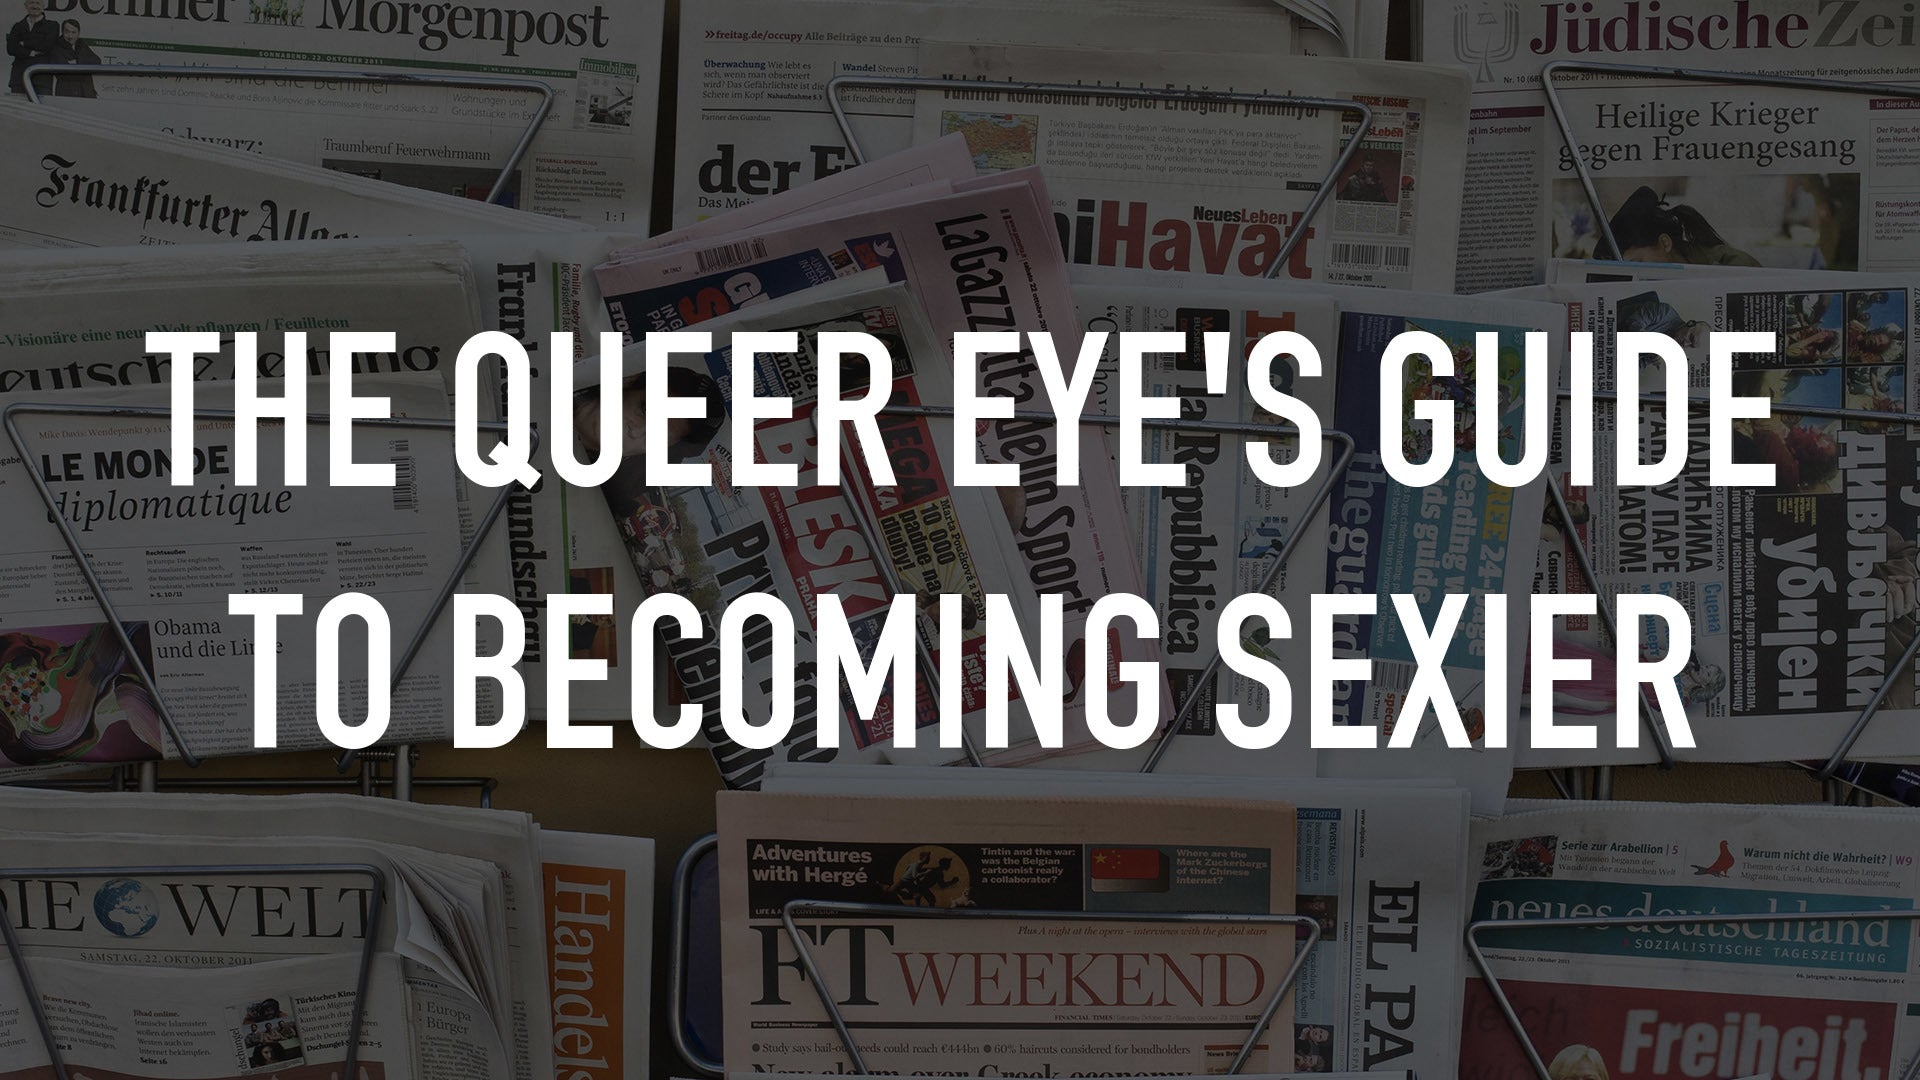 The Queer Eye's Guide to Becoming Sexier